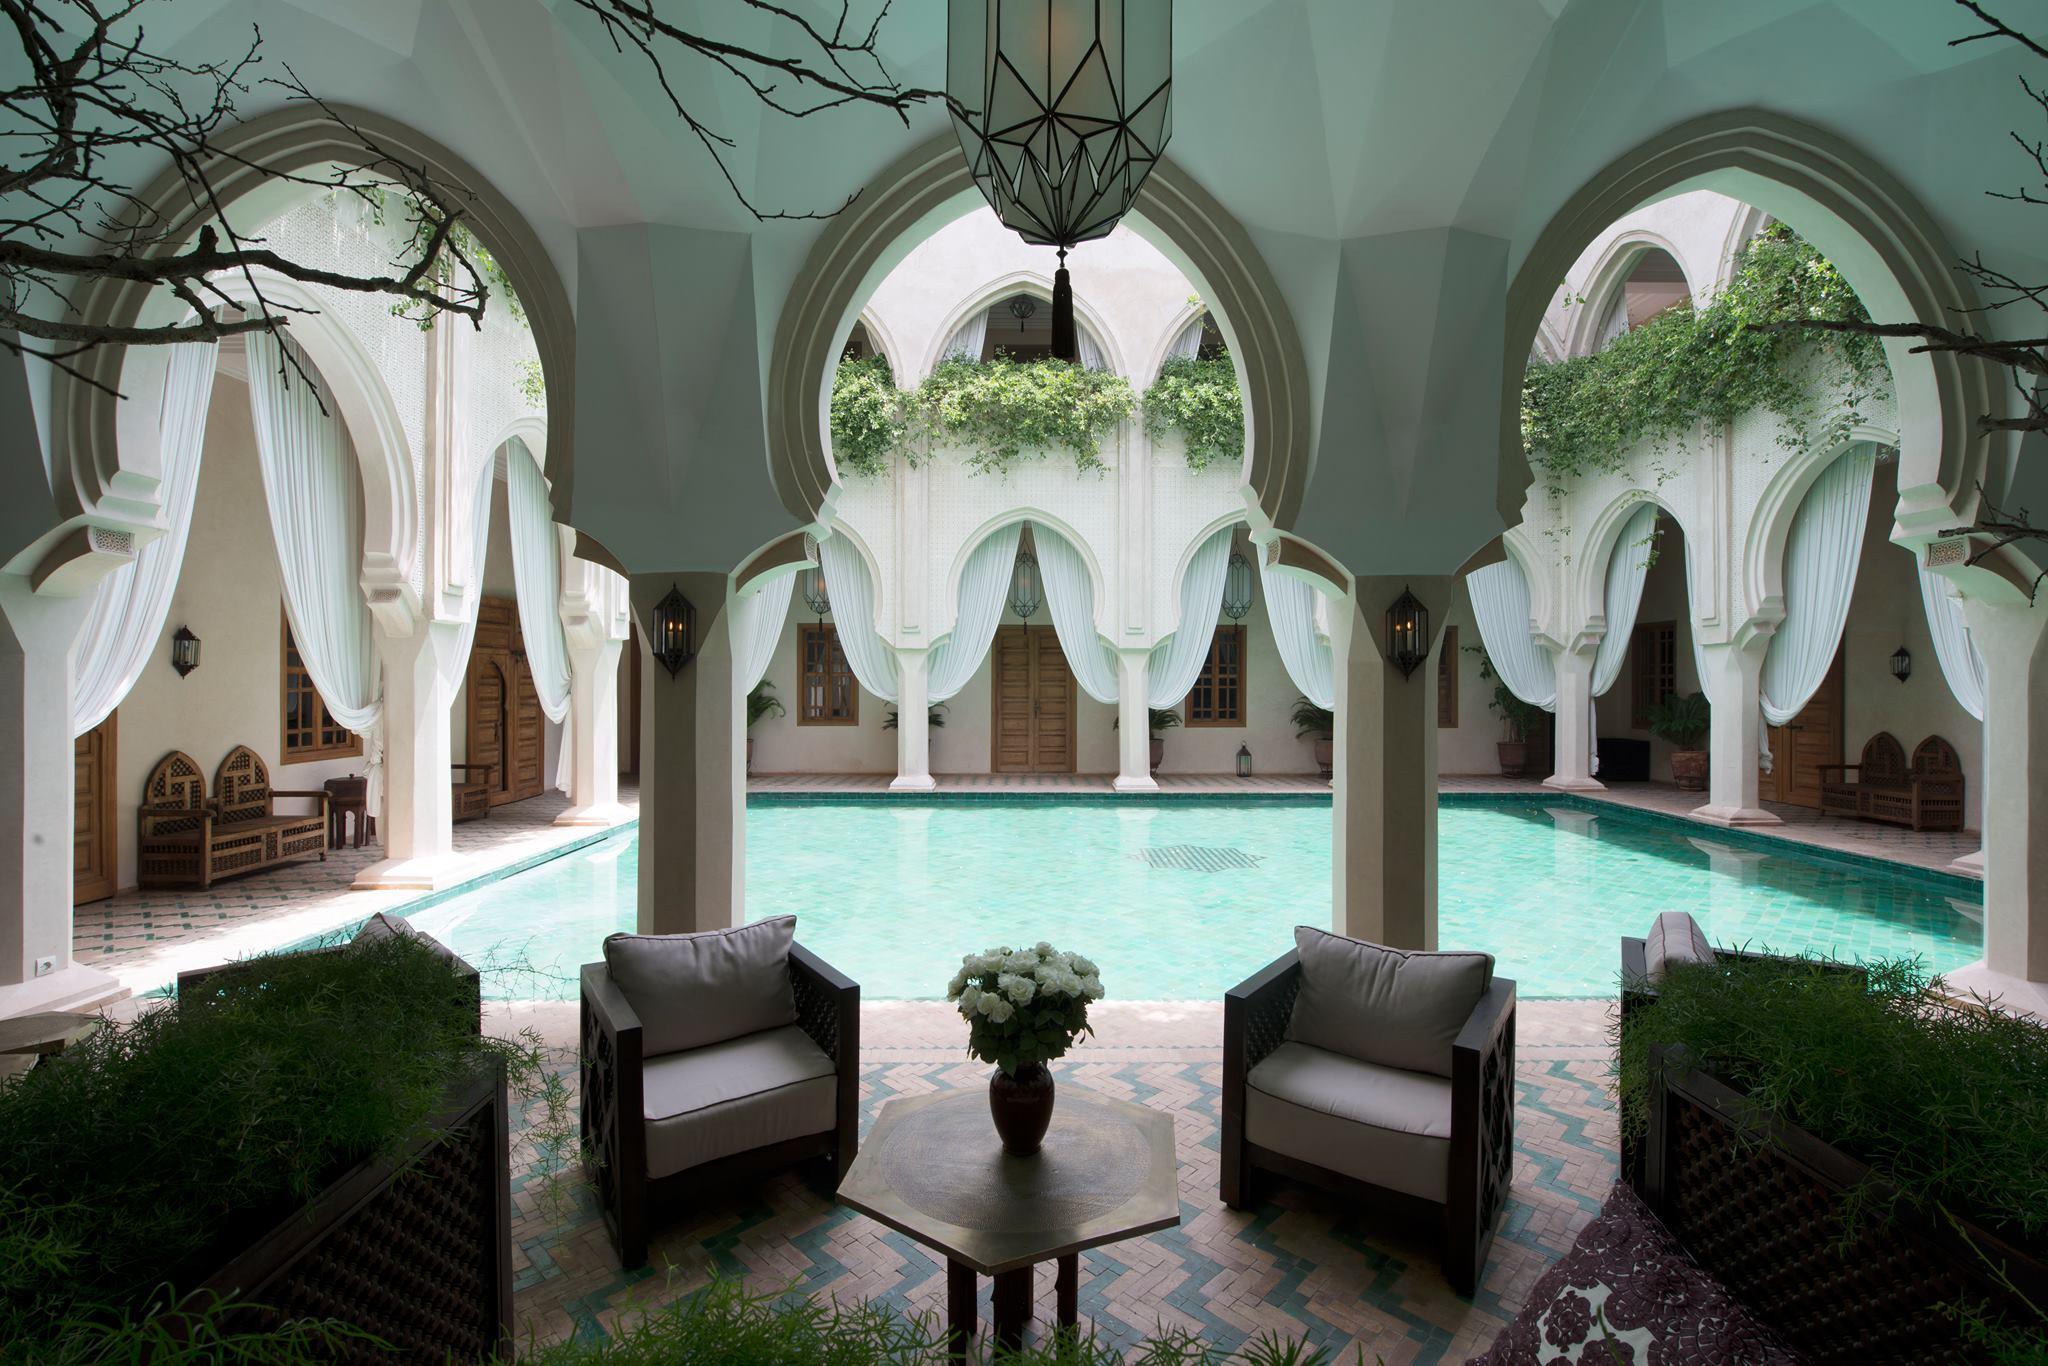 What is a Riad in Morocco?